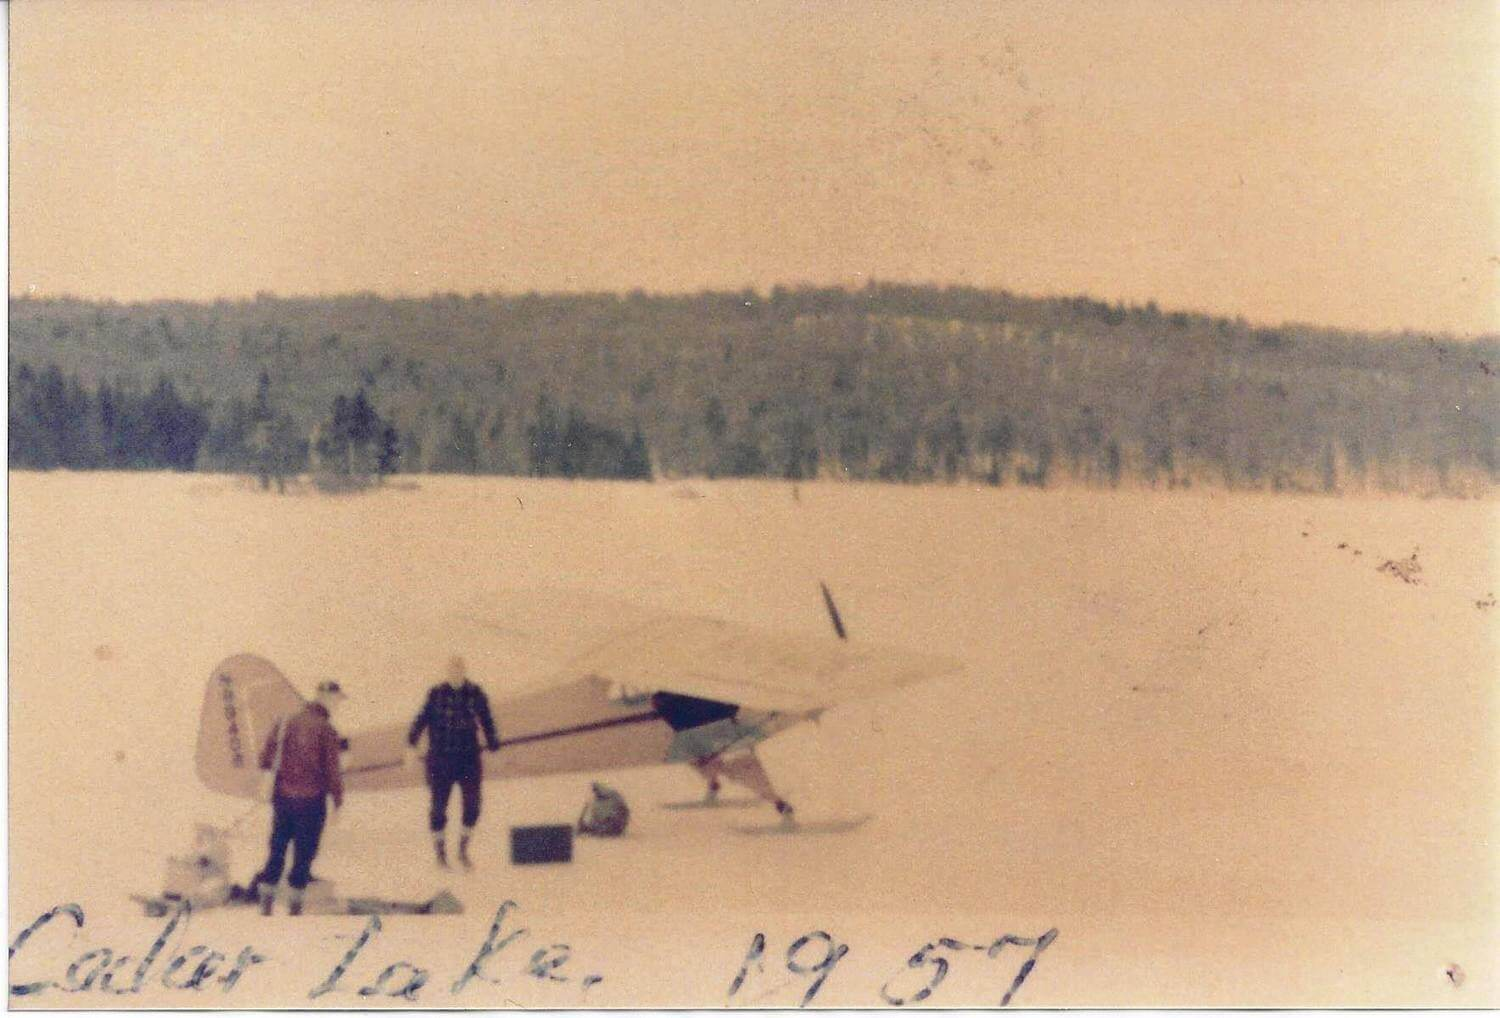 Seaplane on Cedar Lake in 1957